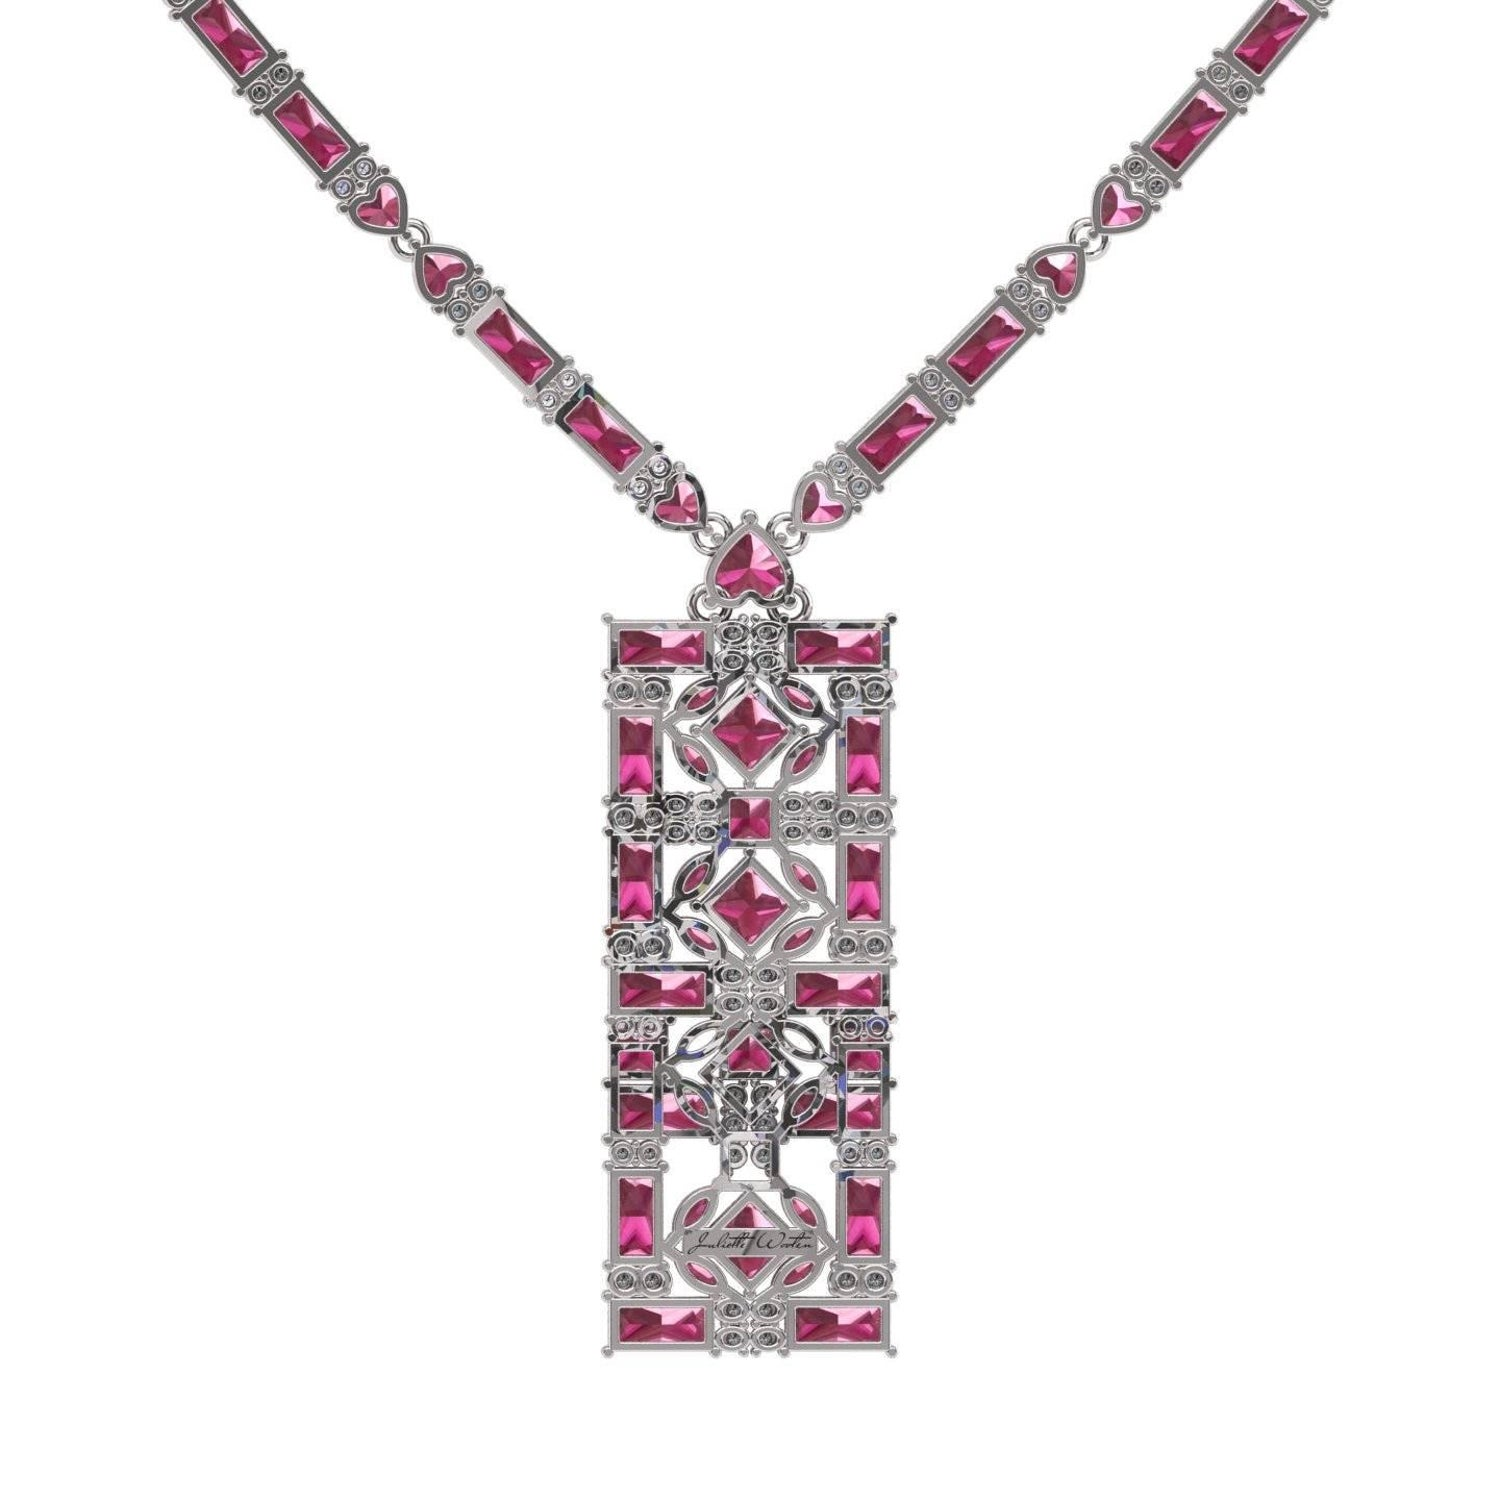 heart wooten master for diamond juliette pendant render gold tormaline j id necklaces pink white earrings jewelry tourmaline at baguette necklace sale